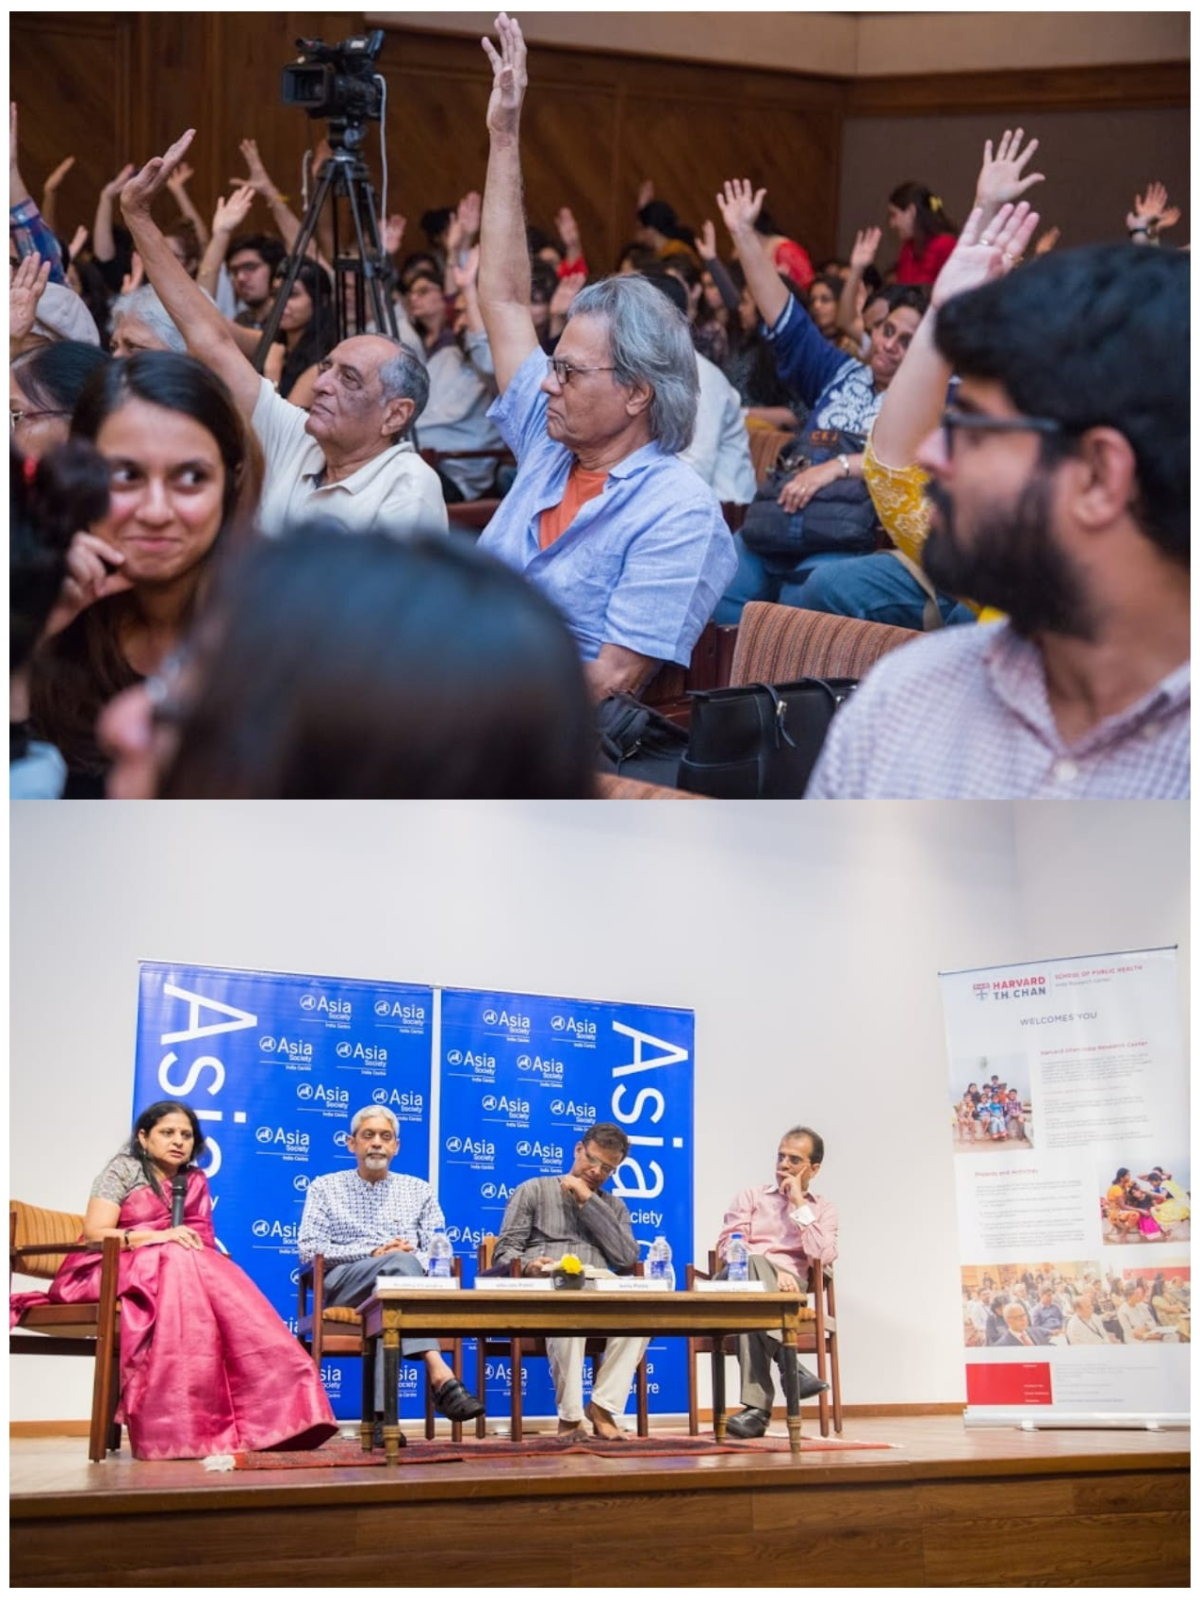 [L-R] Prabha Chandra, Vikram Patel, Jerry Pinto, Samir Parikh with audience